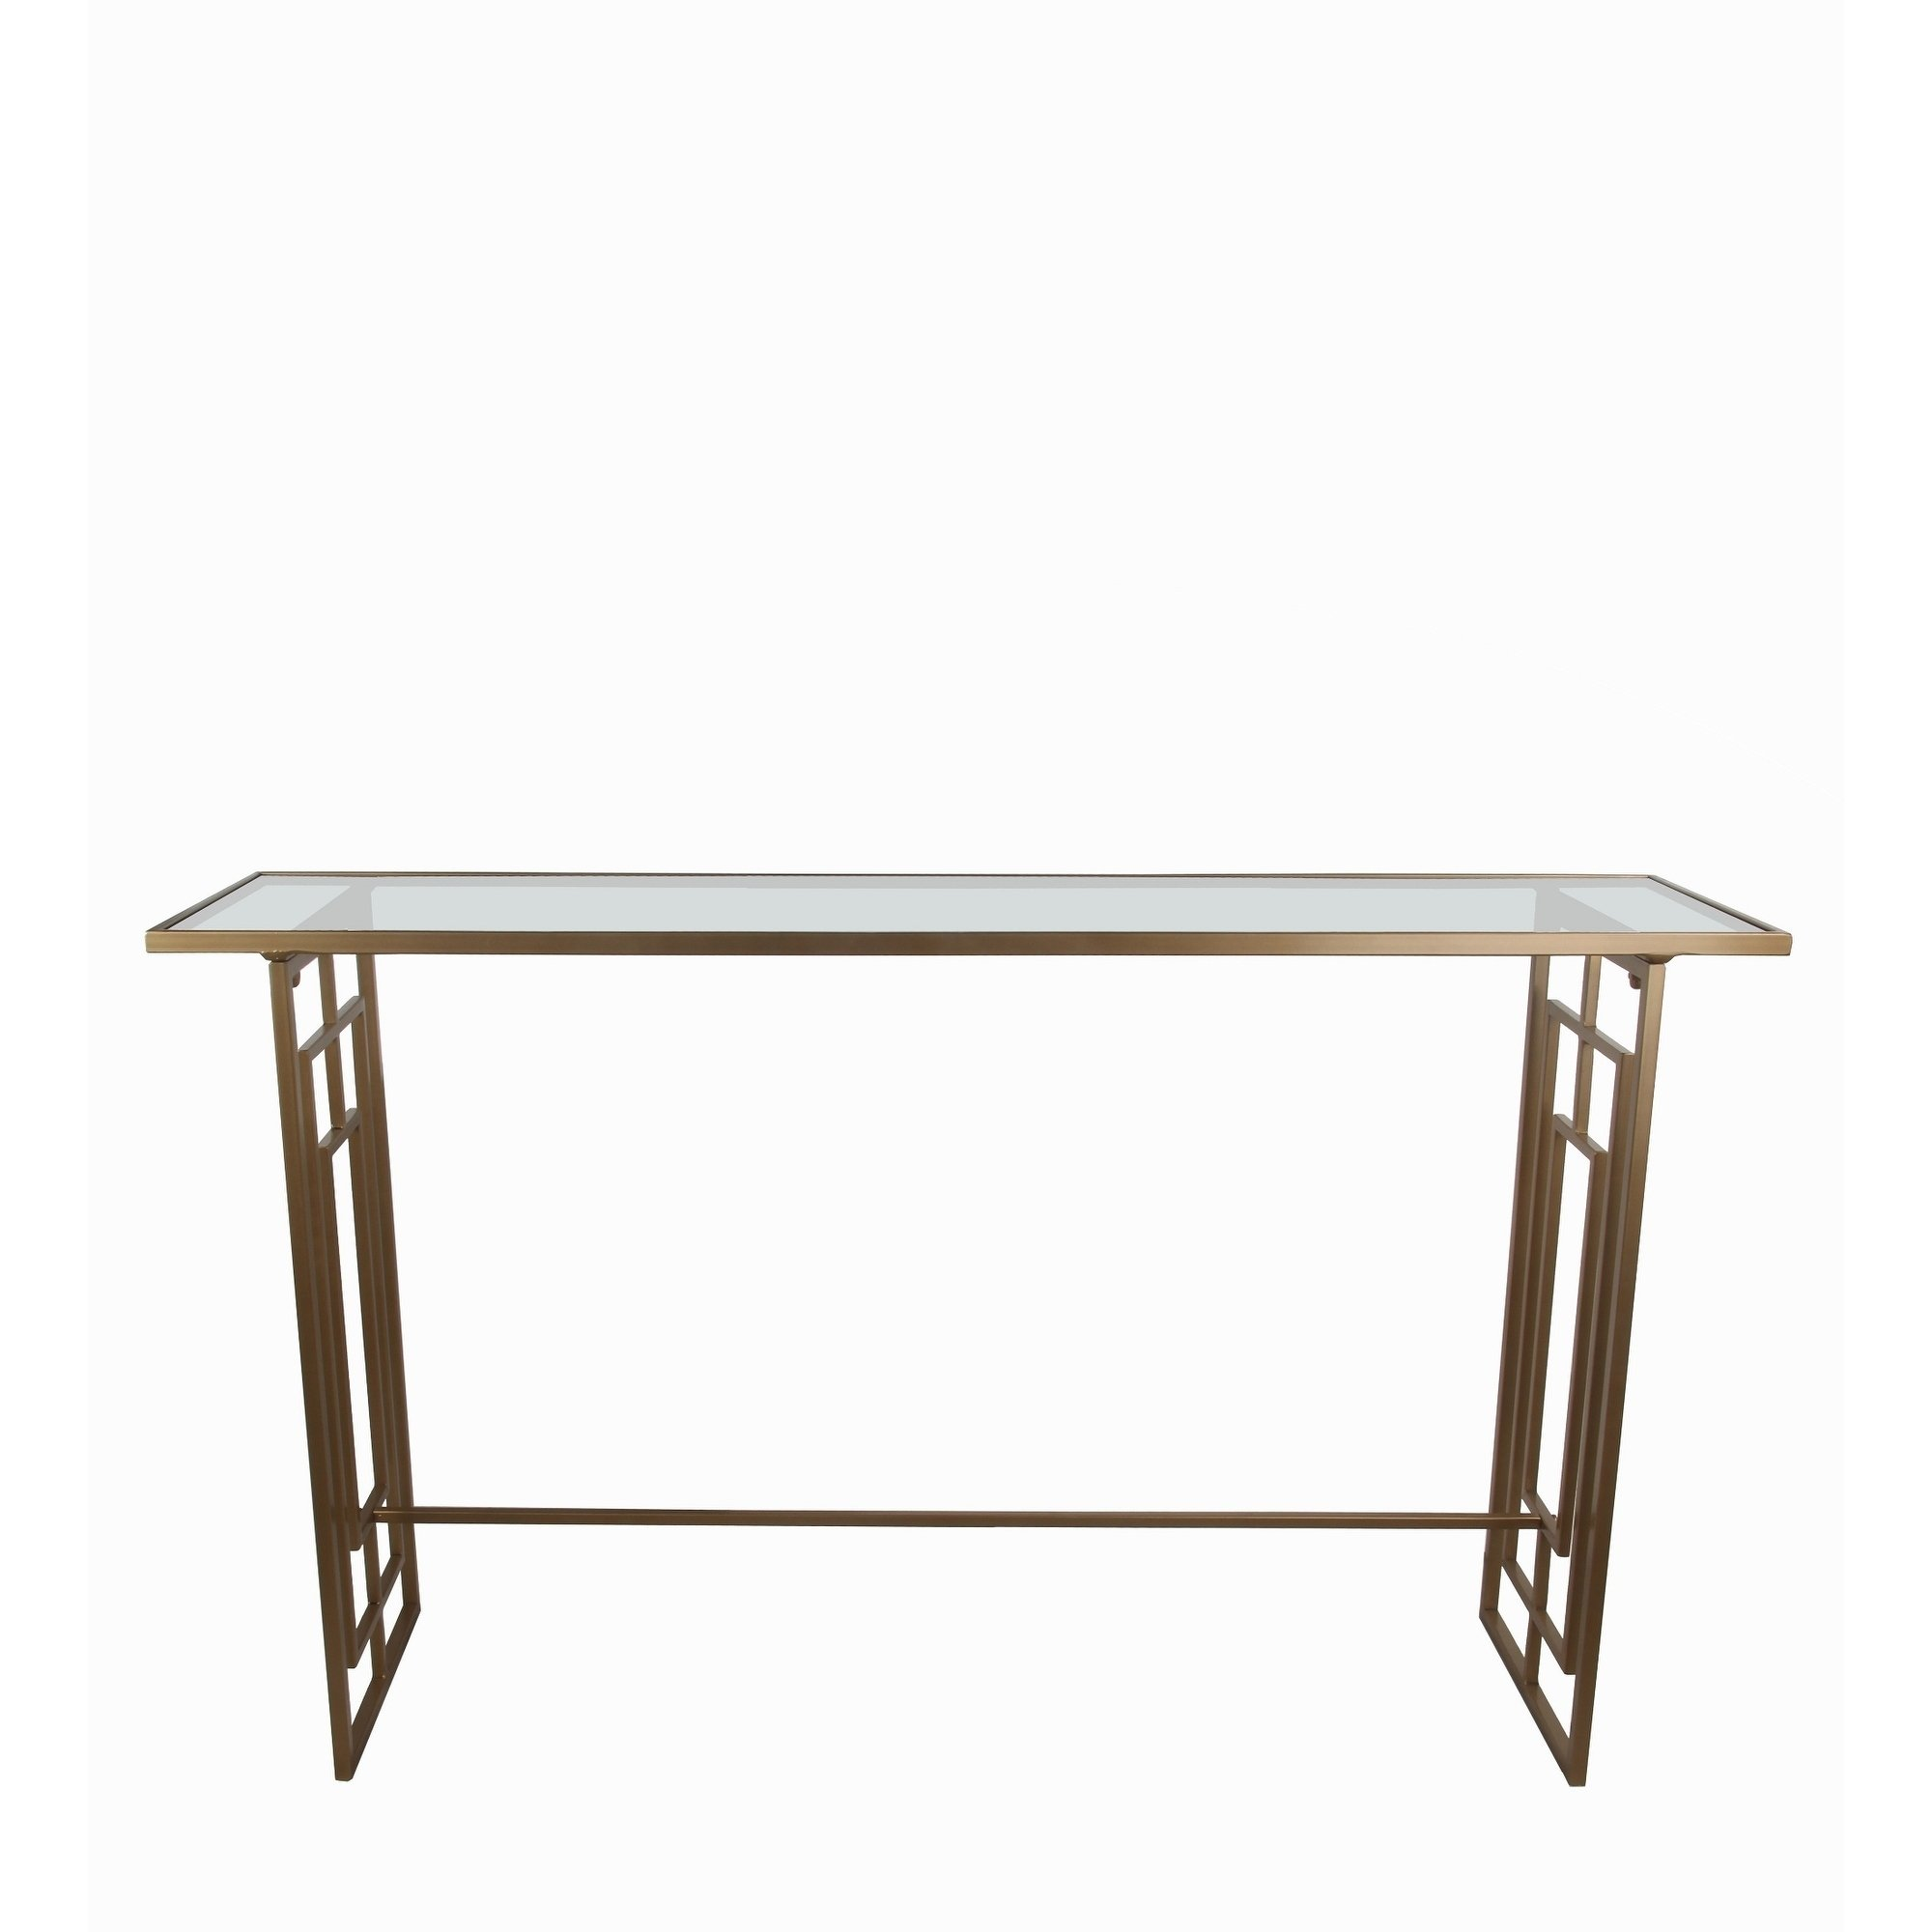 privilege gold finish iron accent console table free shipping today glass bedside square legs bohemian coffee seaside themed lighting black nightstand lucite waterfall funky end